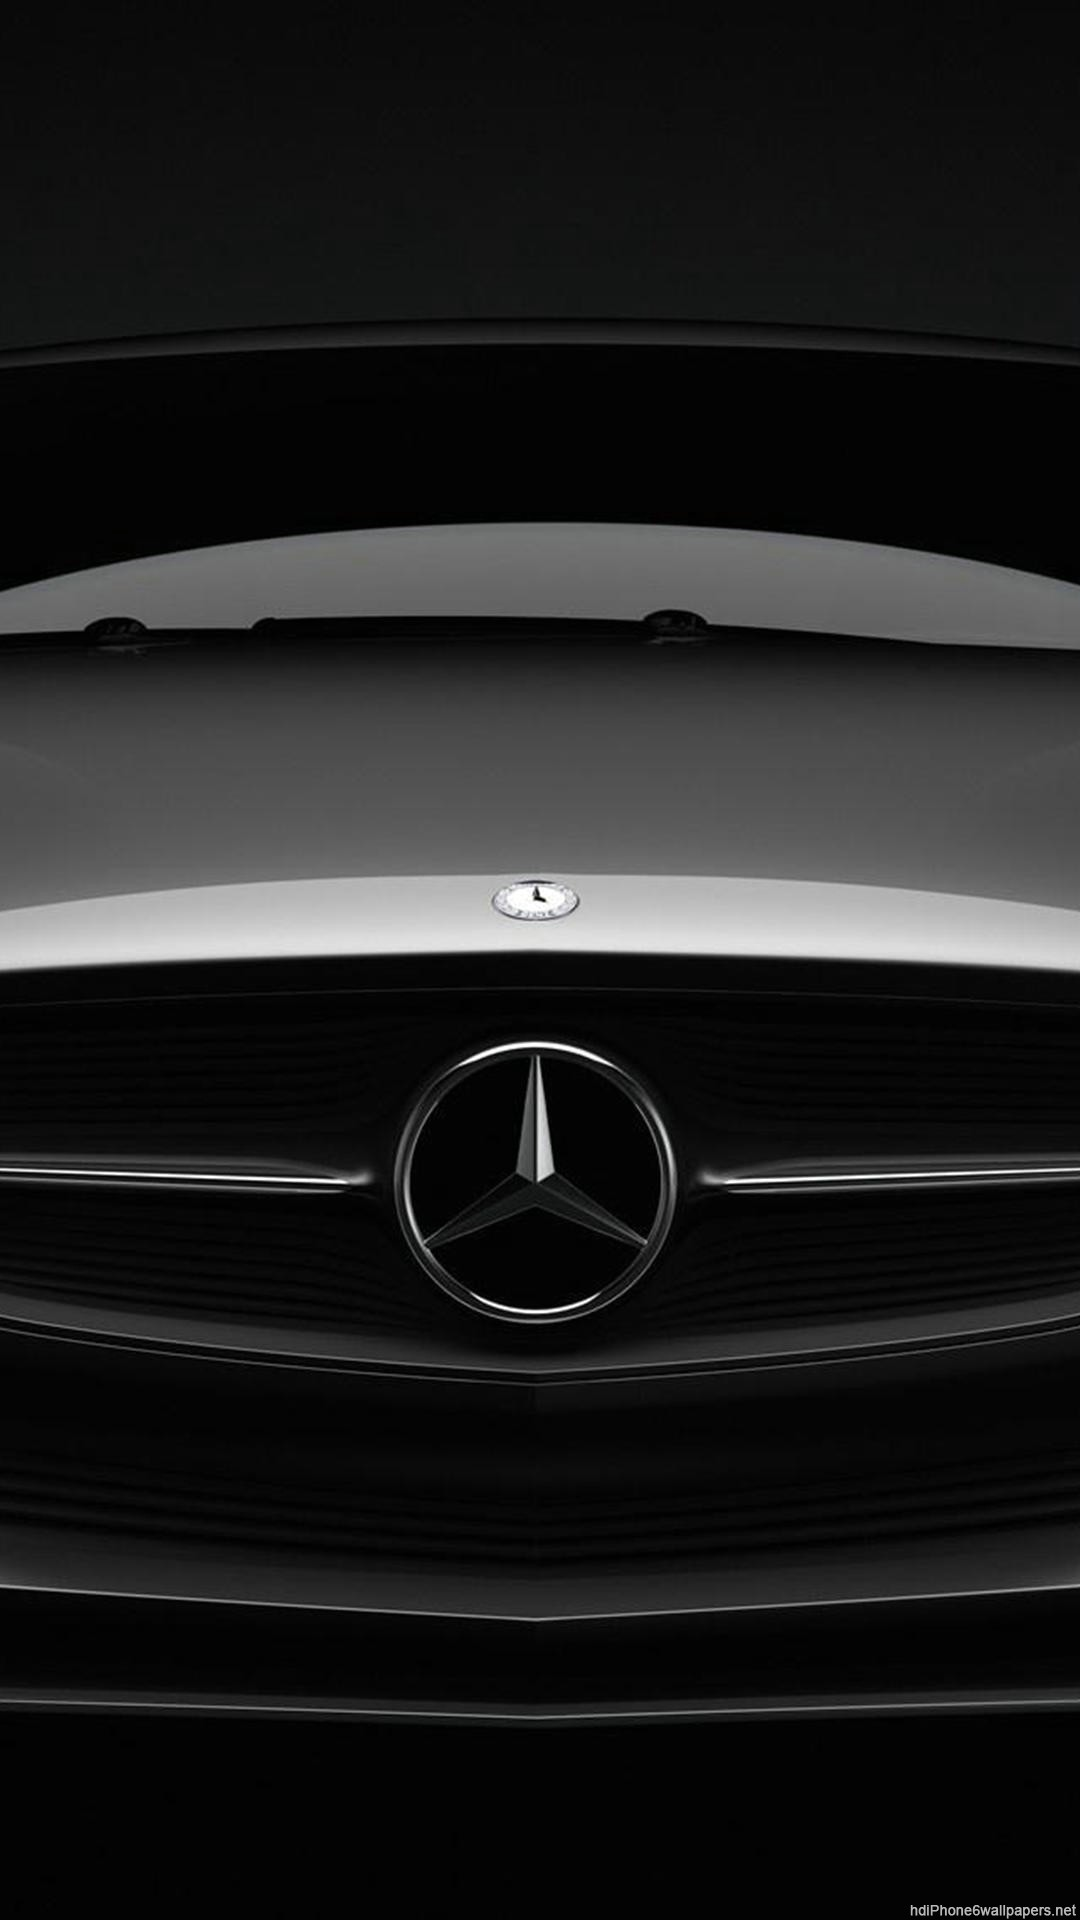 Make it easy with our tips on application. Mercedes Car Iphone 6 Wallpapers Hd Mercedes Benz Logo Wallpaper Mobile 1080x1920 Download Hd Wallpaper Wallpapertip